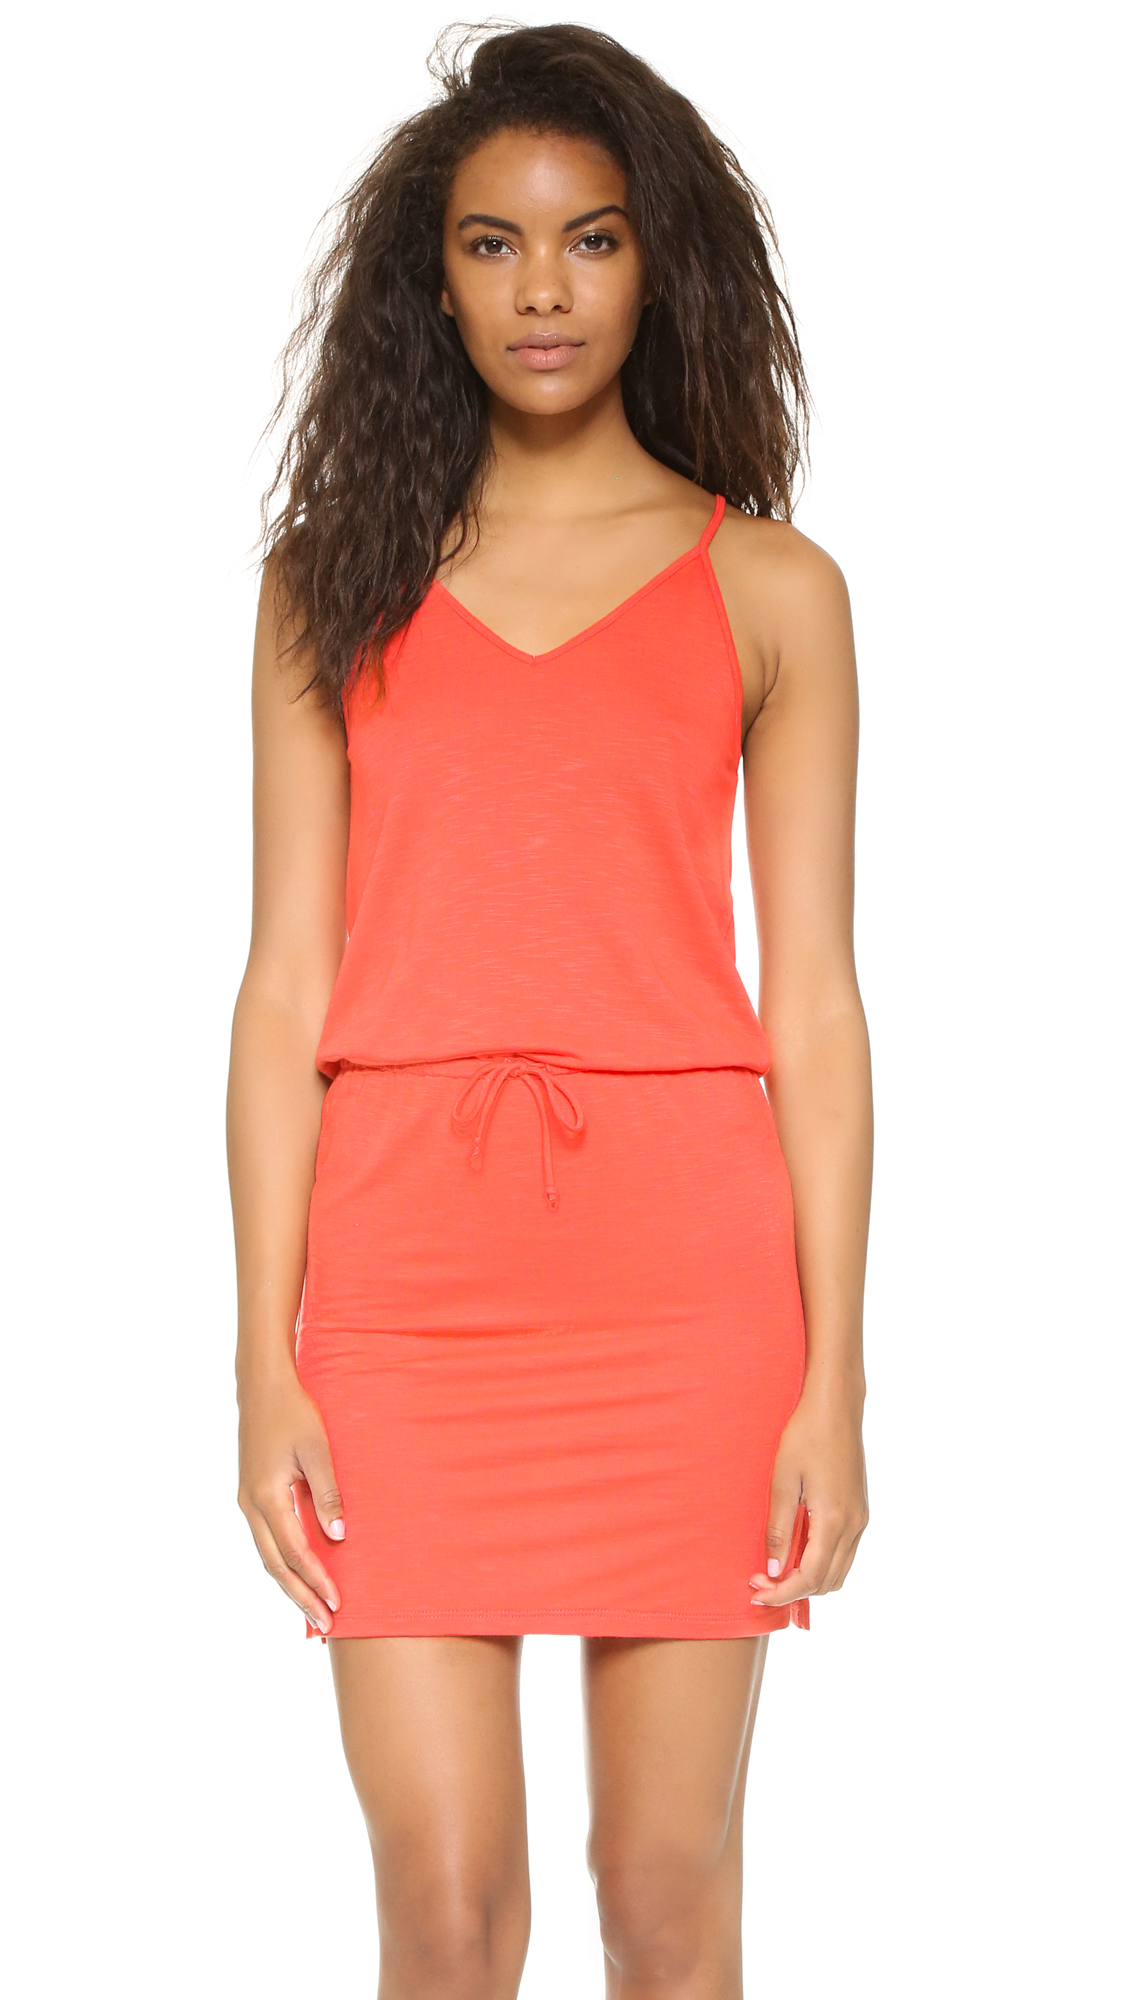 Lanston V Neck Mini Dress - Calypso at Shopbop